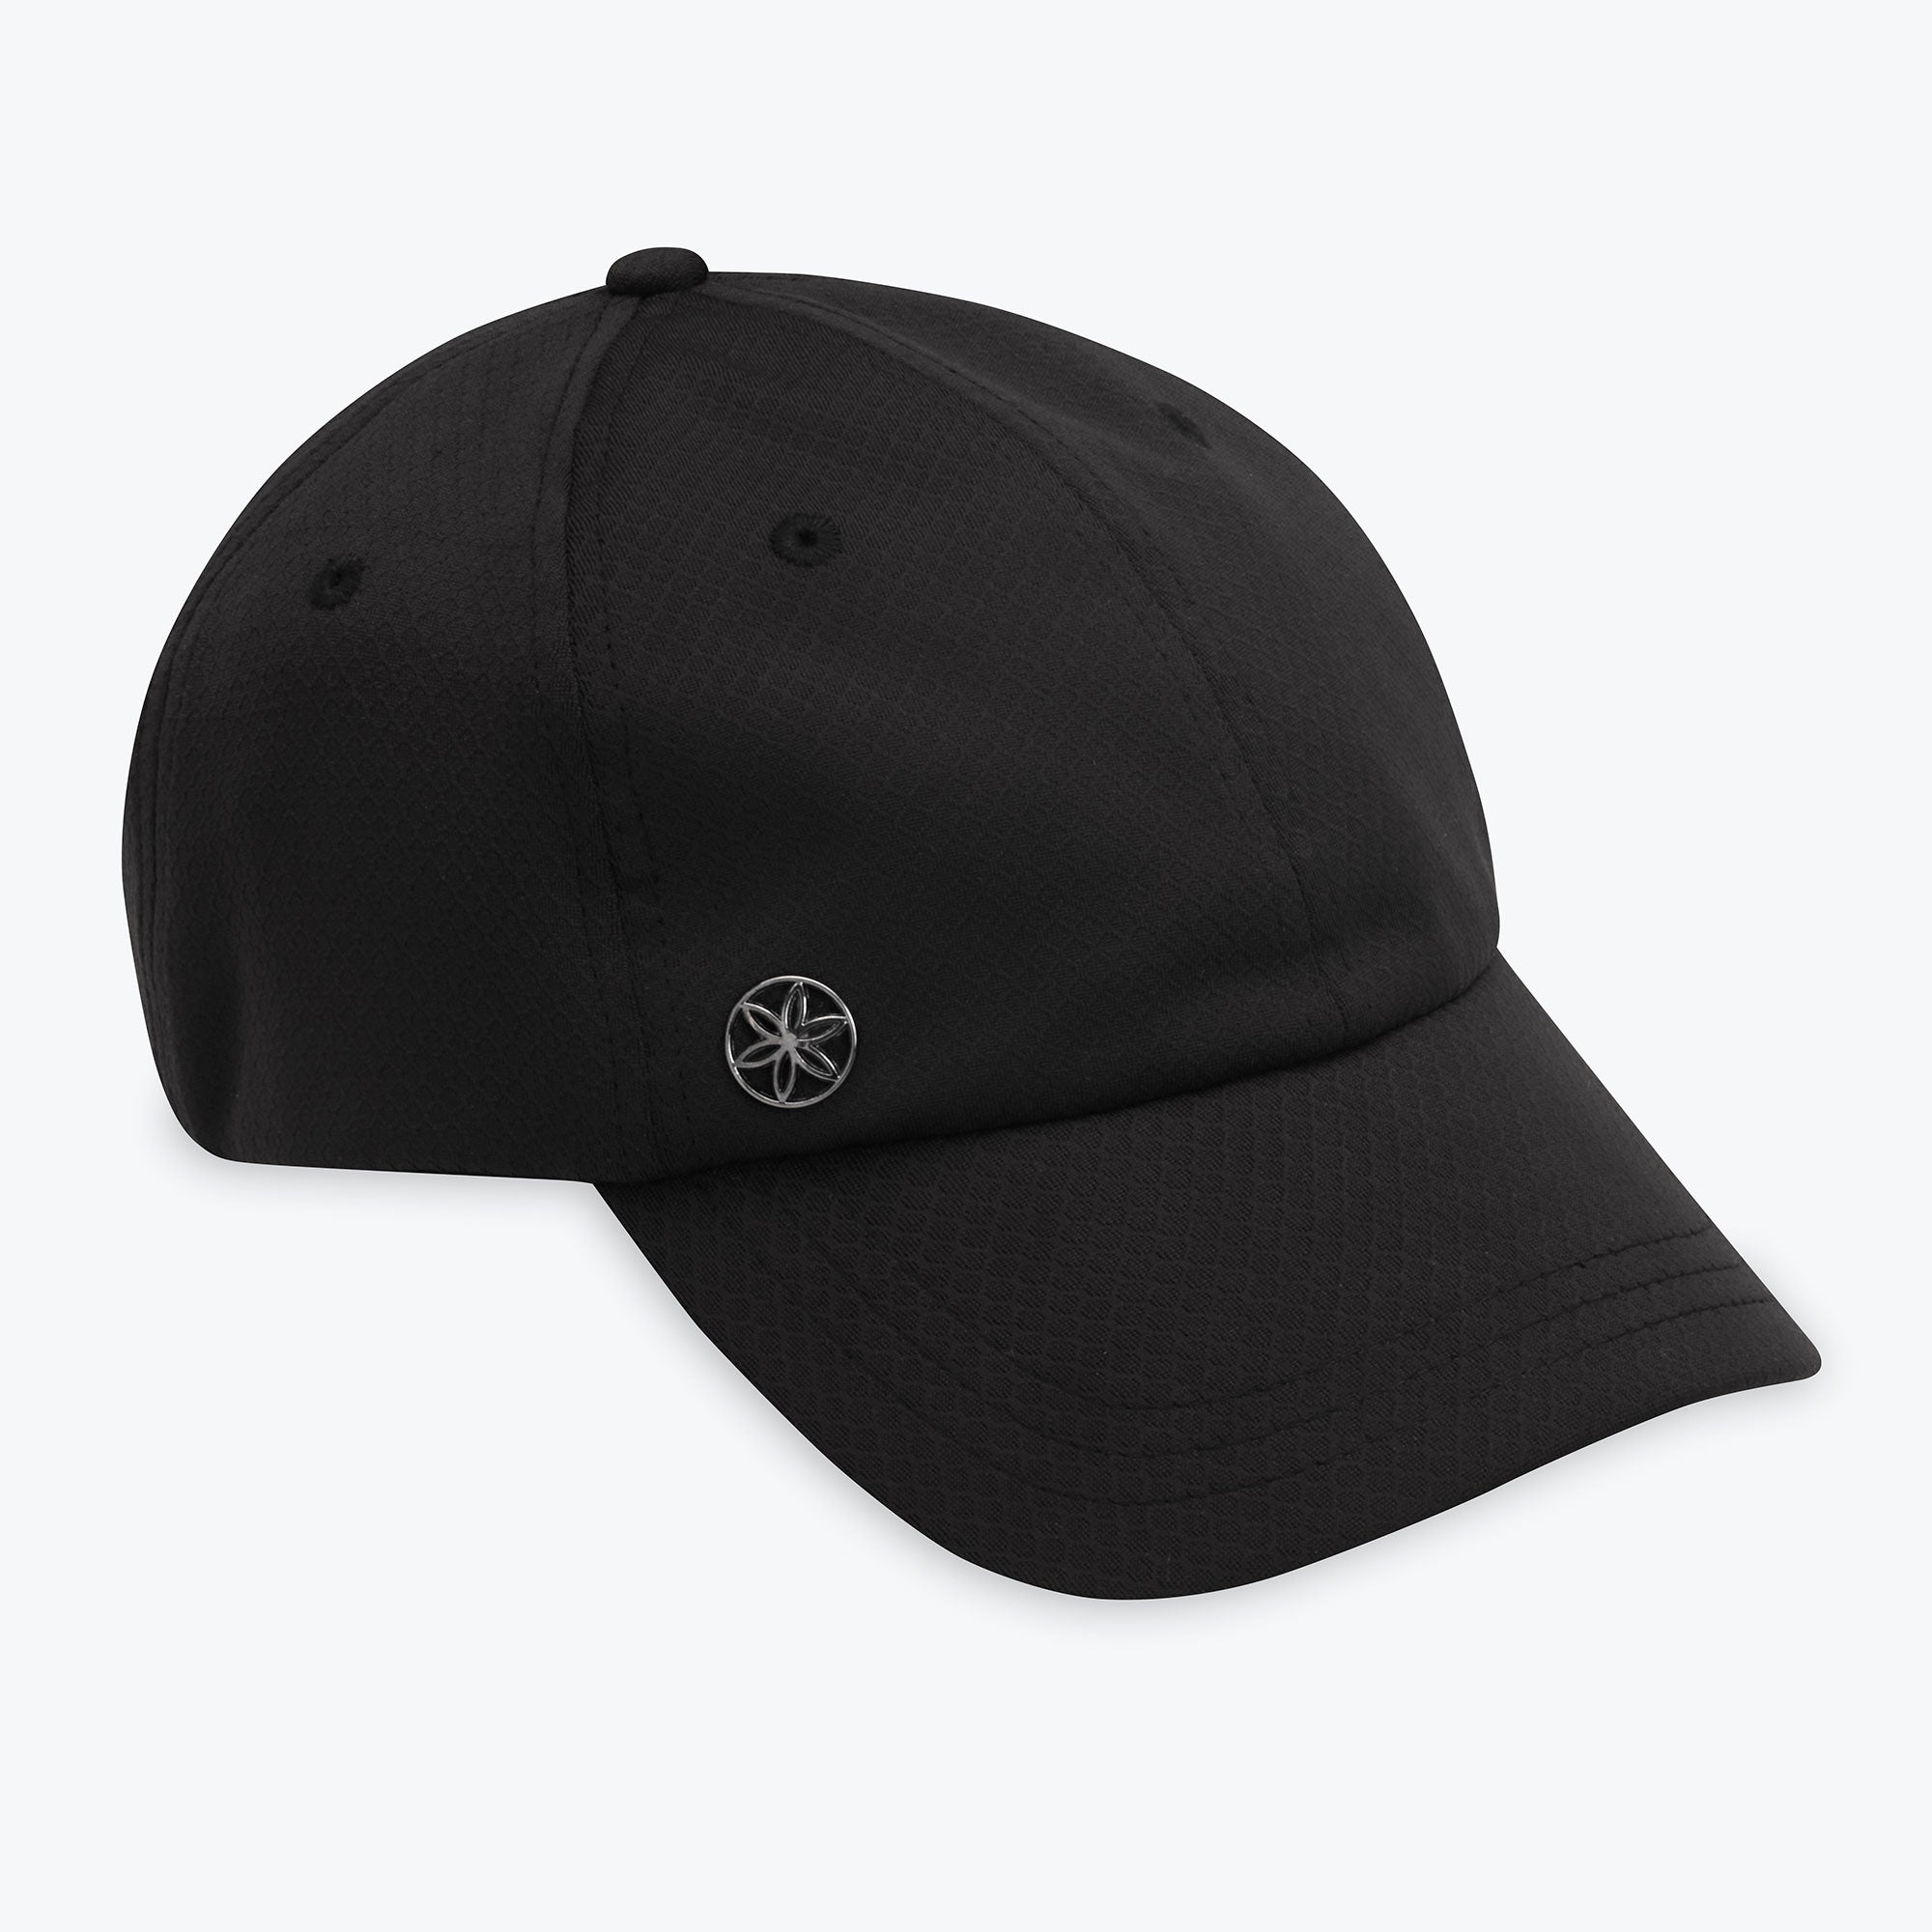 85a8d940 Performance Fitness Hat - Gaiam